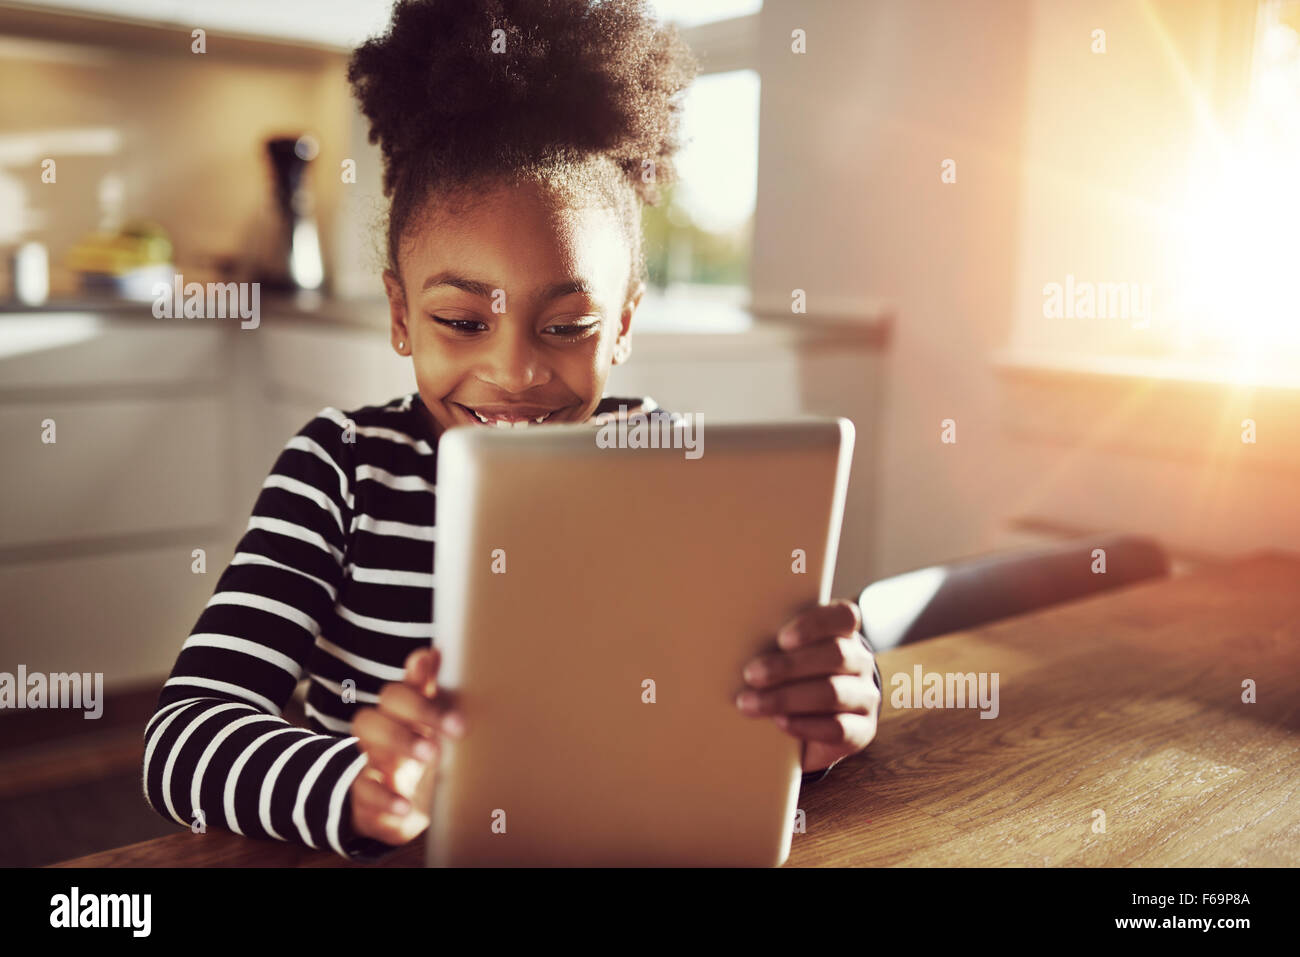 Little Black girl ethnique assis à la maison dans la cuisine la lecture sur un ordinateur tablette avec plaisir, Photo Stock